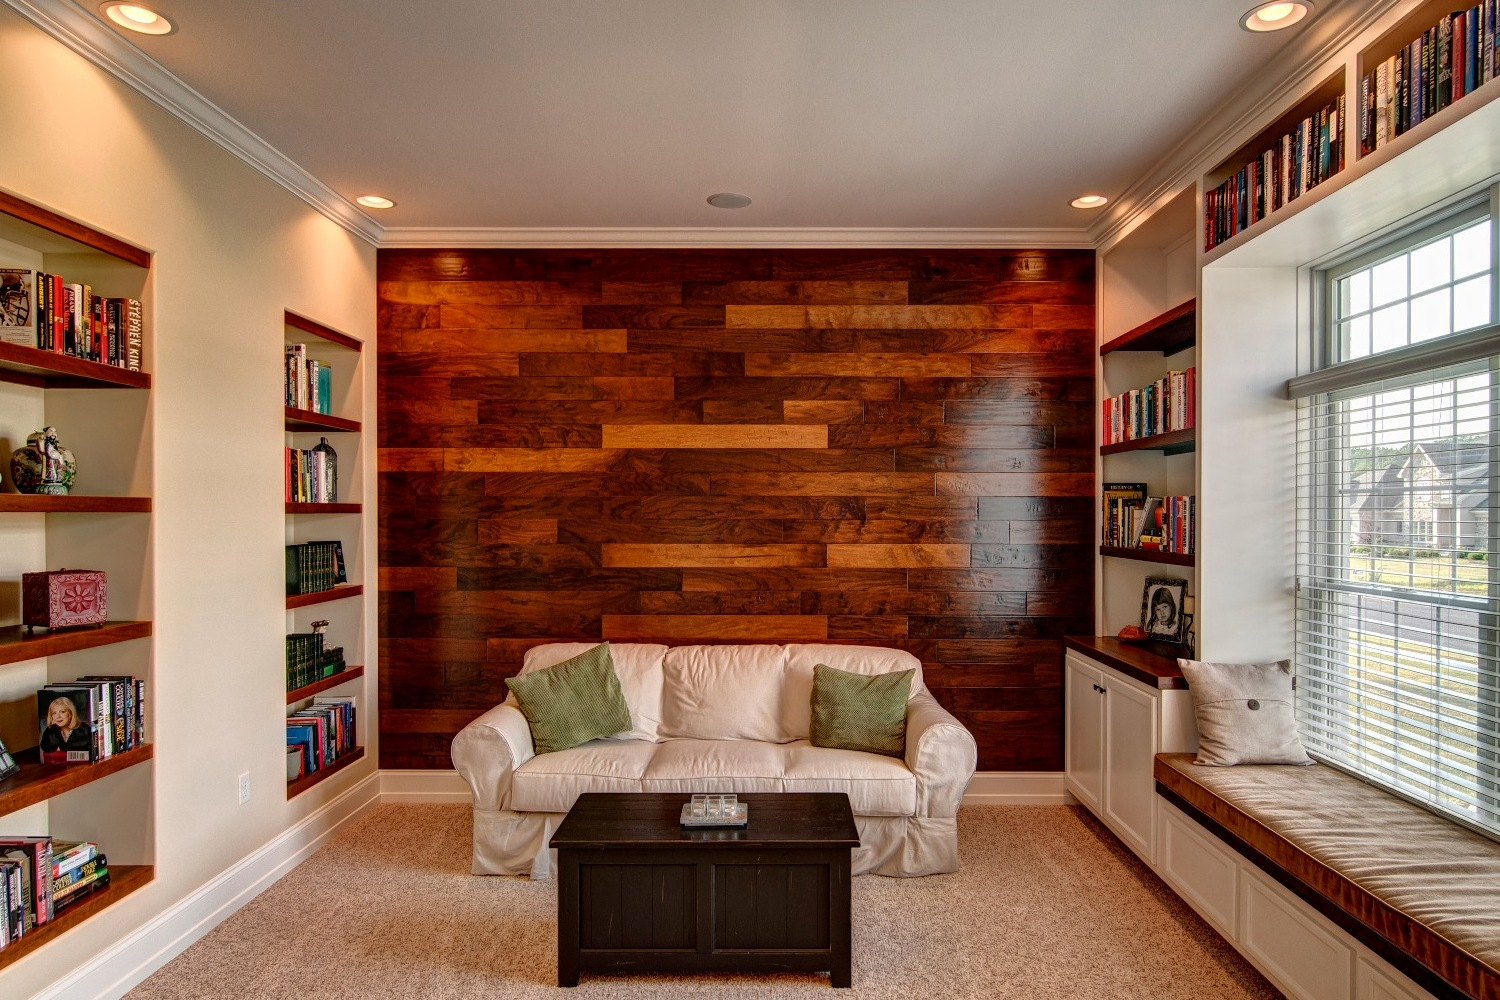 Library with wooden wall